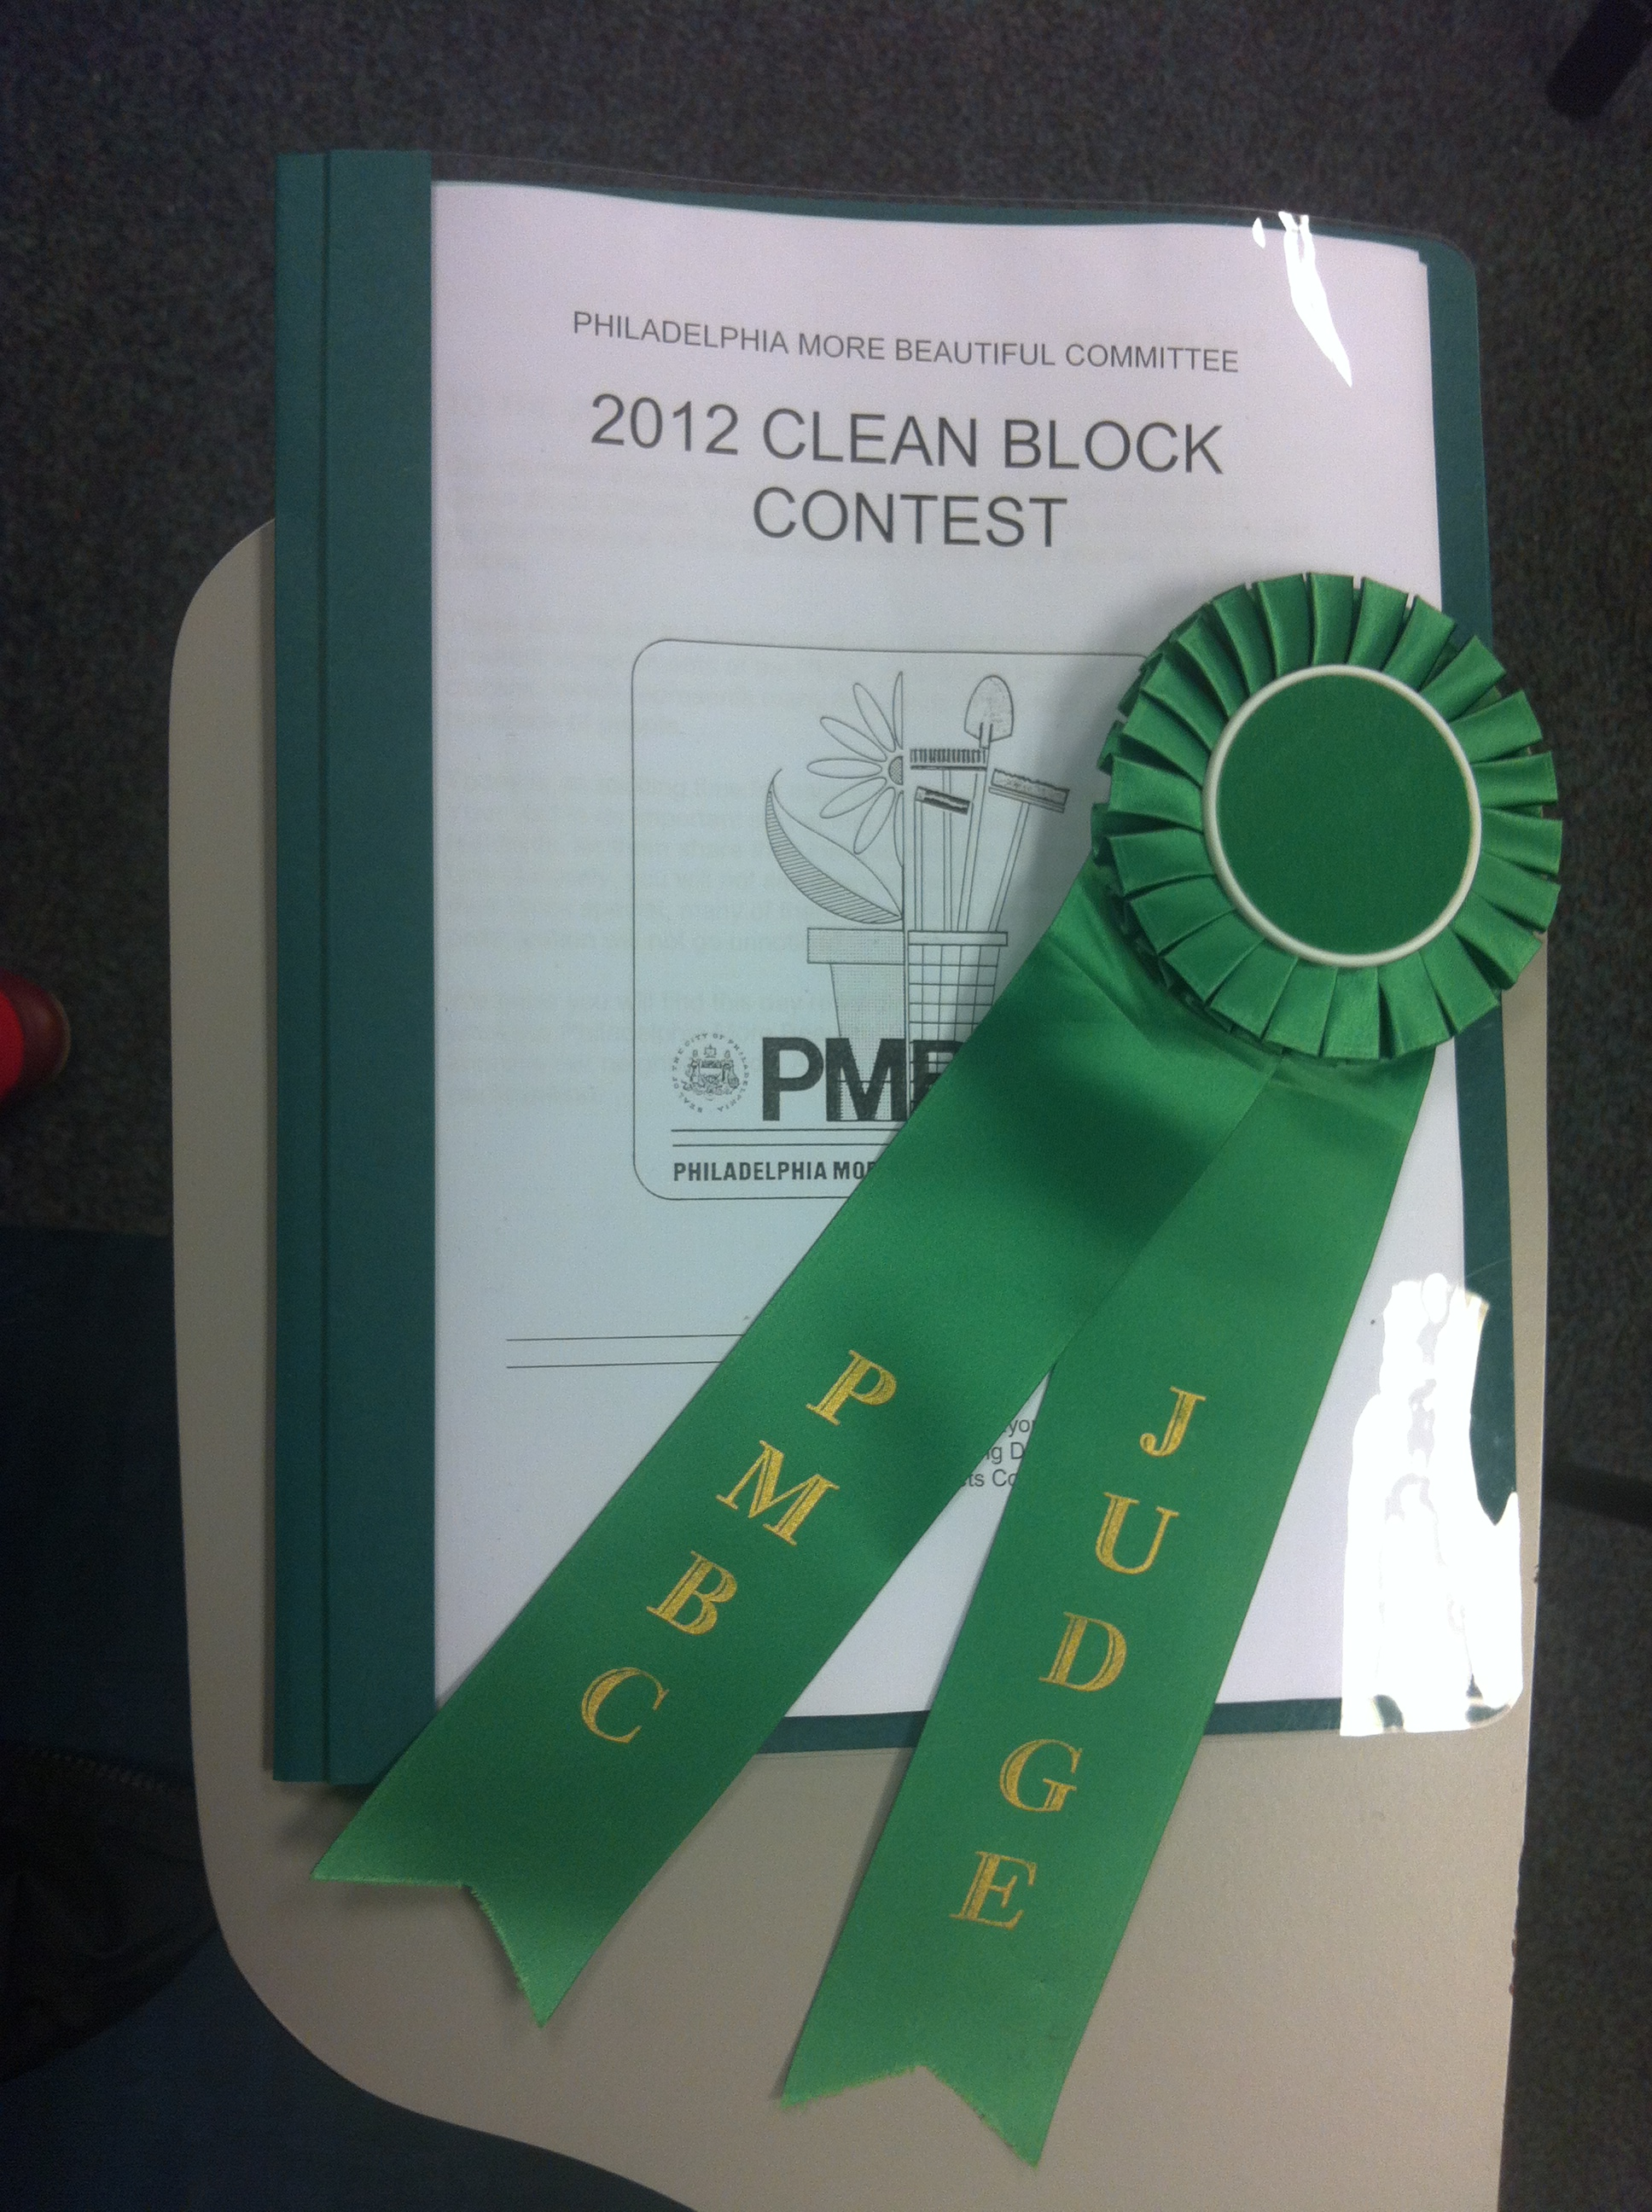 All judges wear a ribbon and receive a detailed judging packet with a history of the contest as well as guidelines for issuing fair scores at each block.